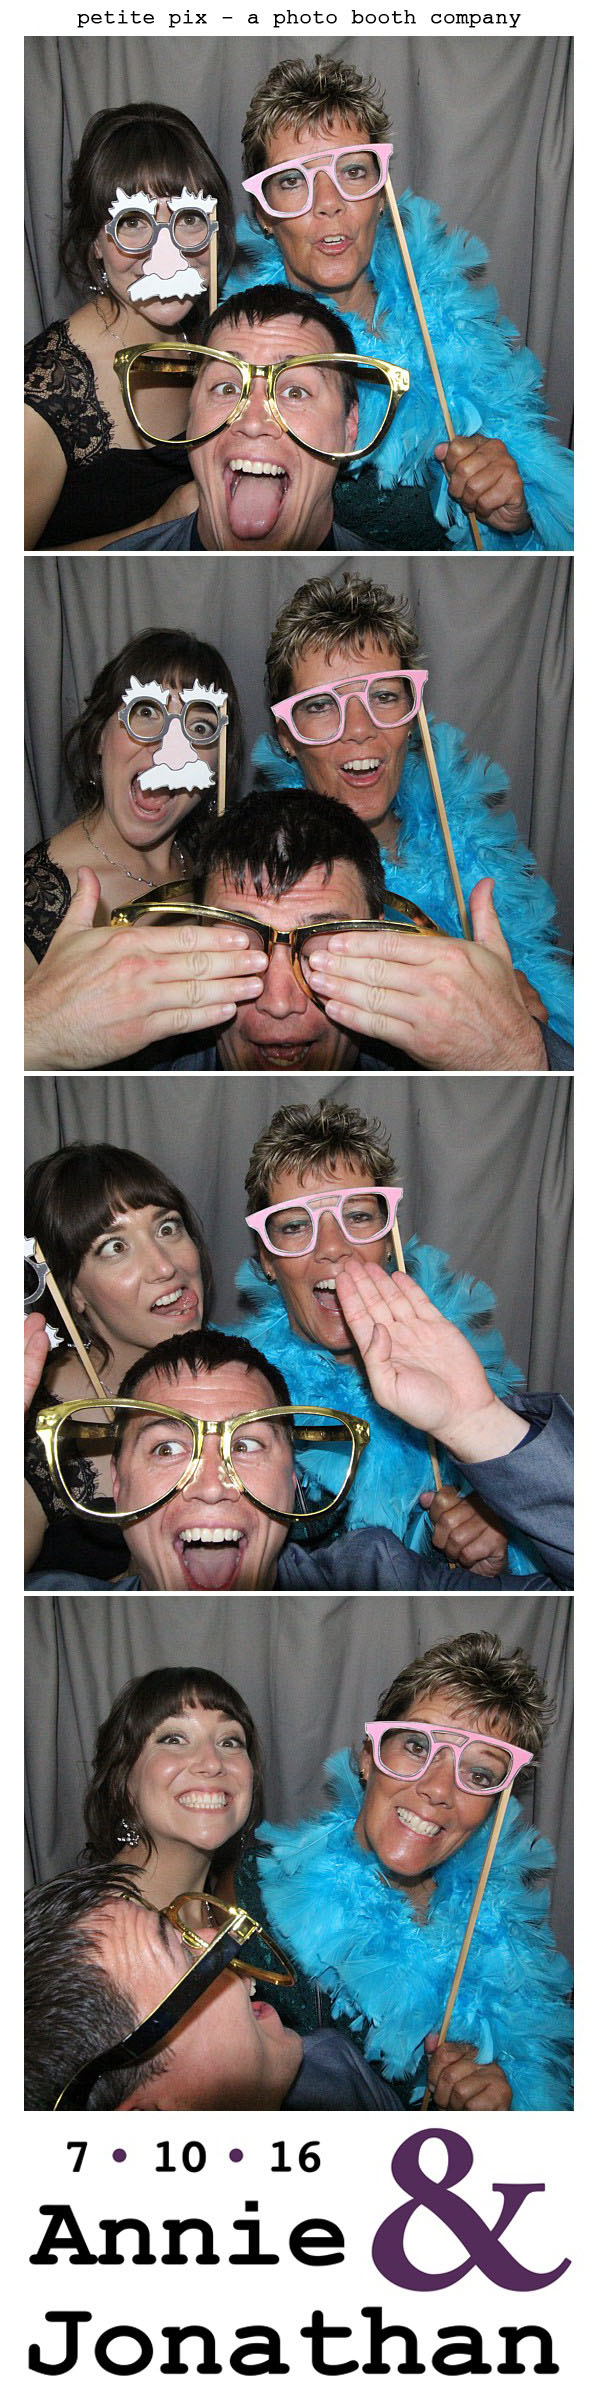 Petite Pix Classic Photo Booth at the Cicada Club in Downtown Los Angeles for Annie and Jonathan's Wedding 58